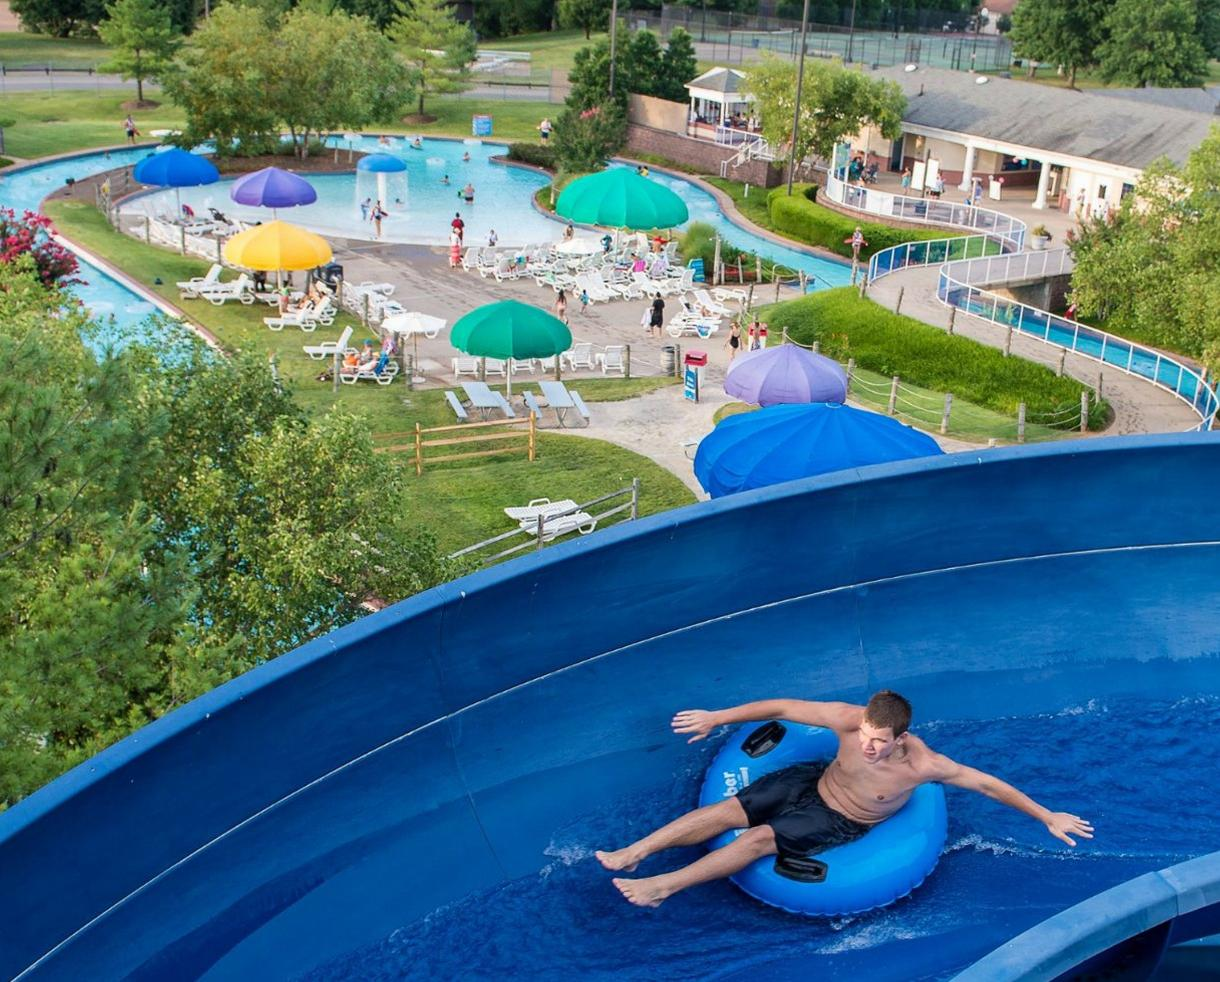 SPECIAL FLASH SALE! SplashDown Waterpark Any-Age Weekday Admission